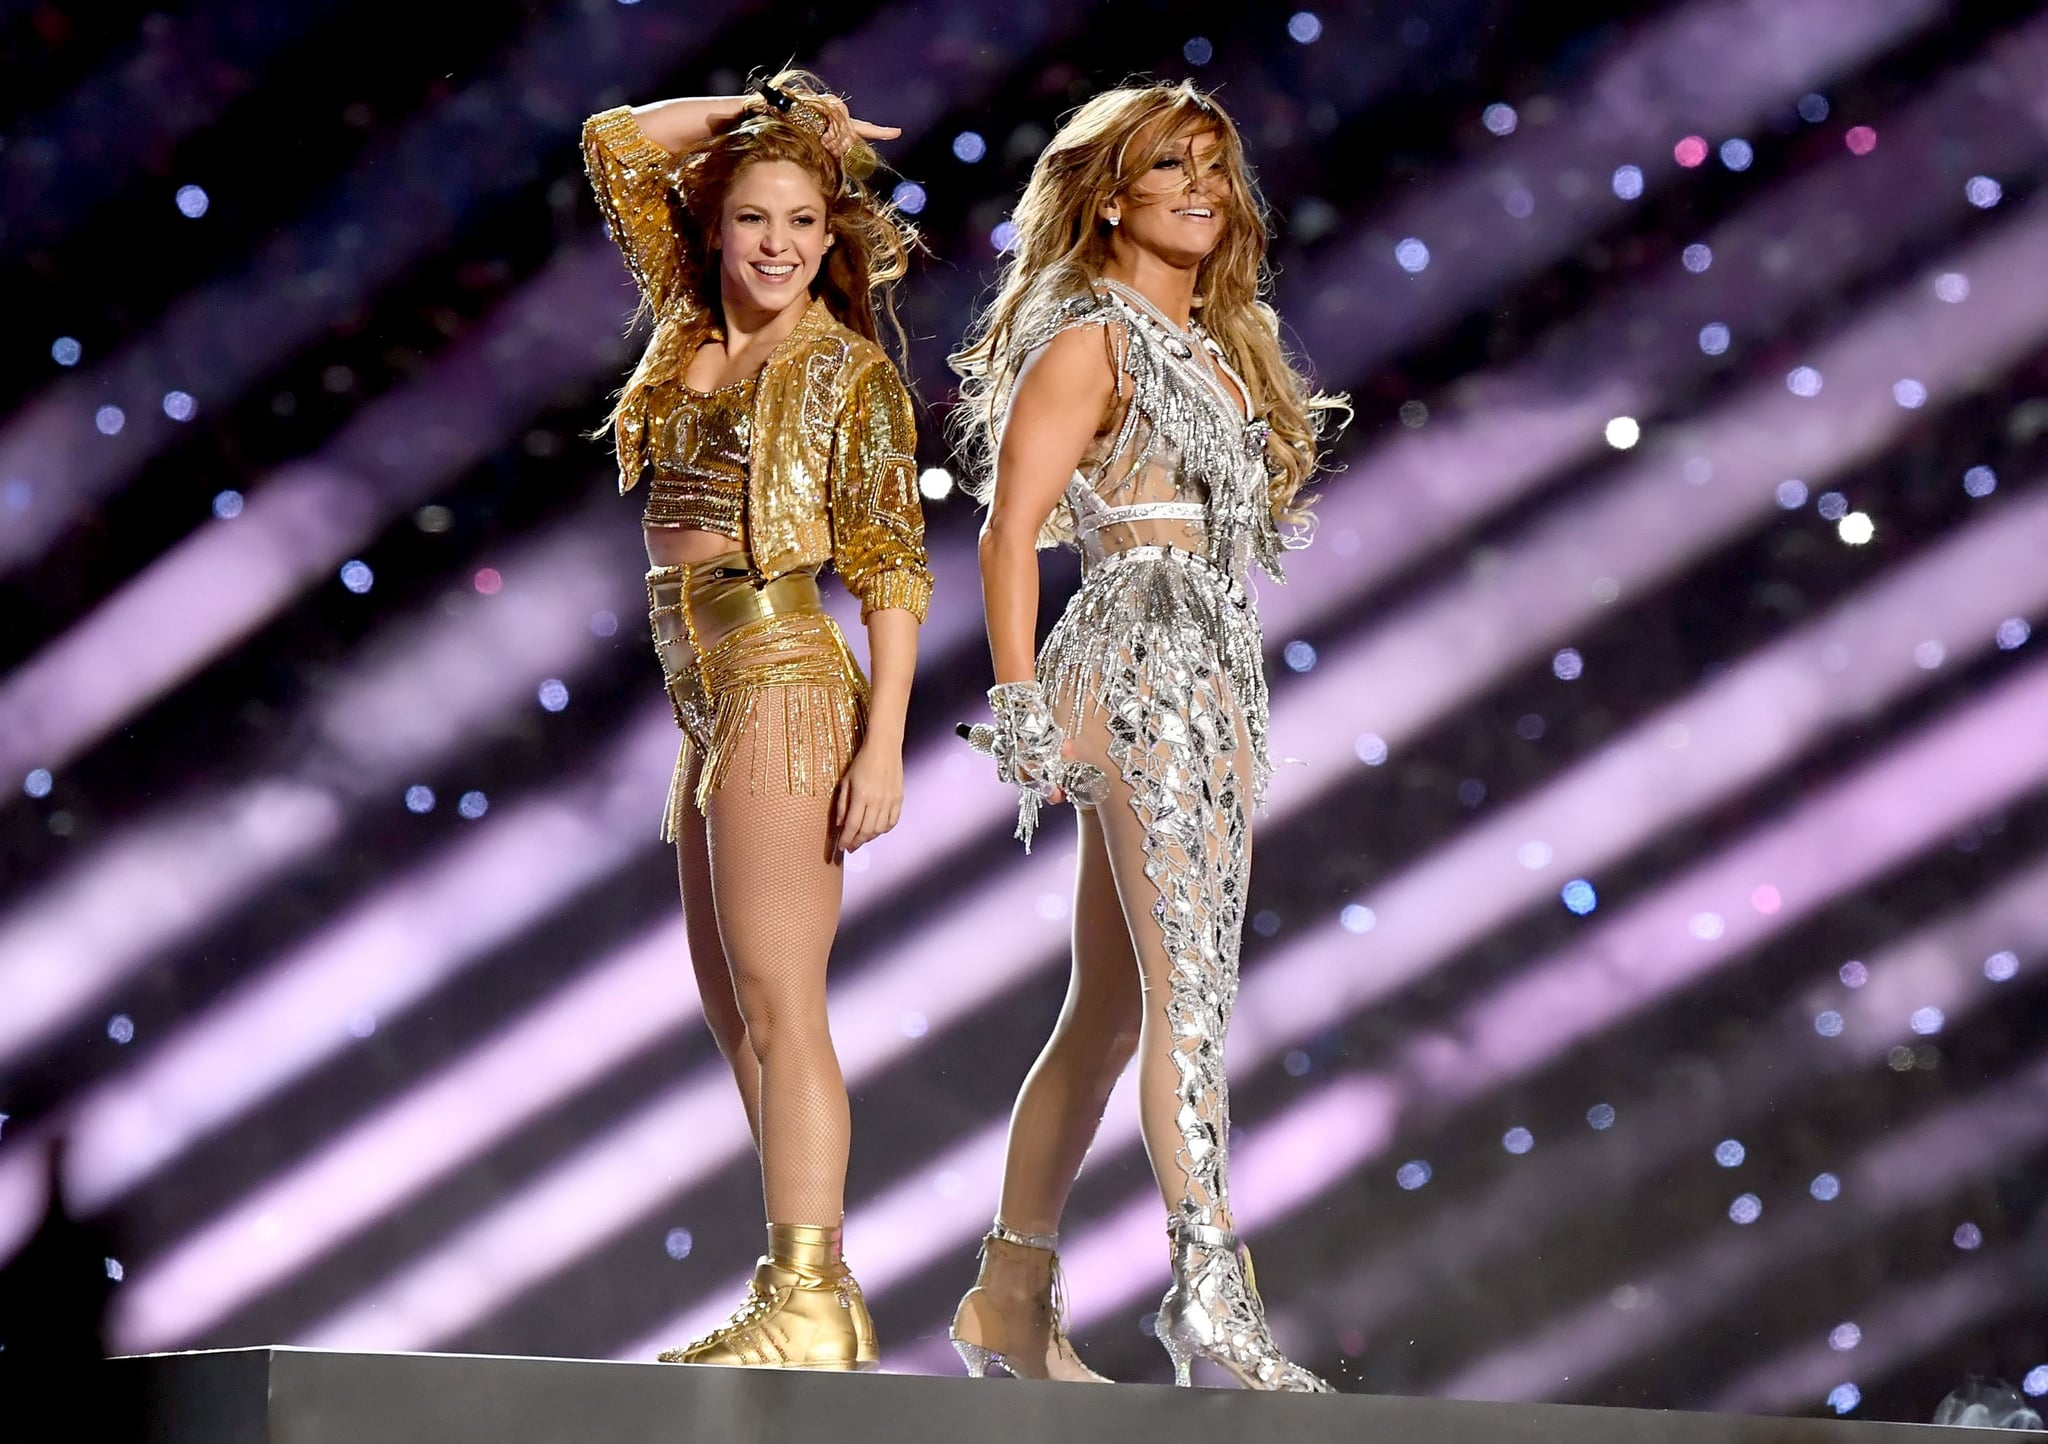 MIAMI, FLORIDA - FEBRUARY 02: (L-R) Shakira and Jennifer Lopez perform onstage during the Pepsi Super Bowl LIV Halftime Show at Hard Rock Stadium on February 02, 2020 in Miami, Florida. (Photo by Kevin Winter/Getty Images)